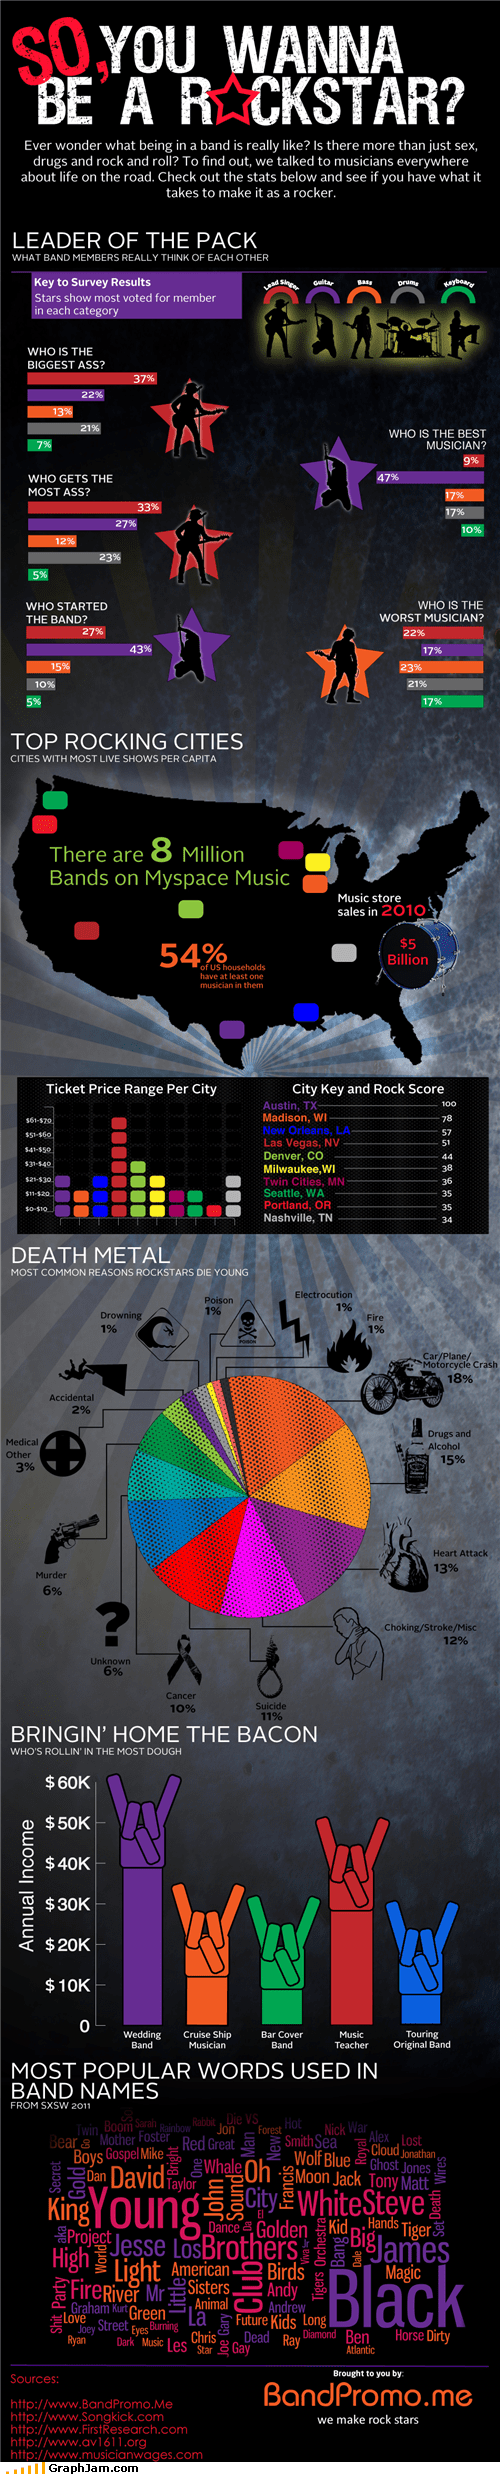 band infographic rock star rockstar Statistics